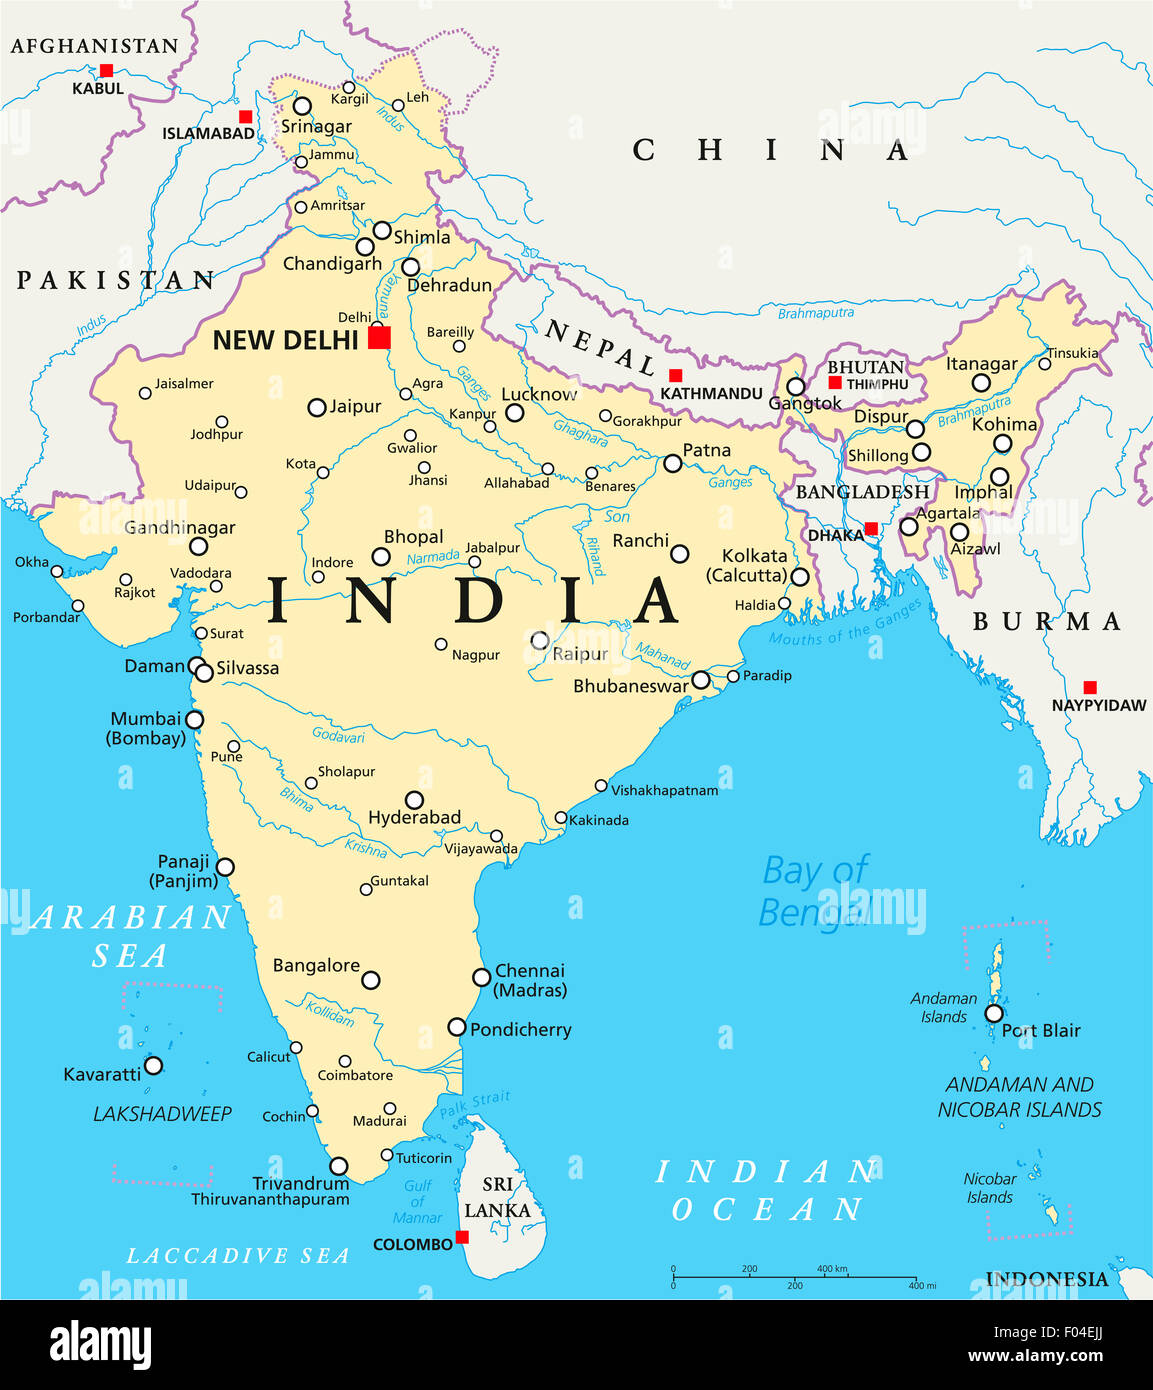 New Delhi India Map India political map with capital New Delhi, national borders Stock